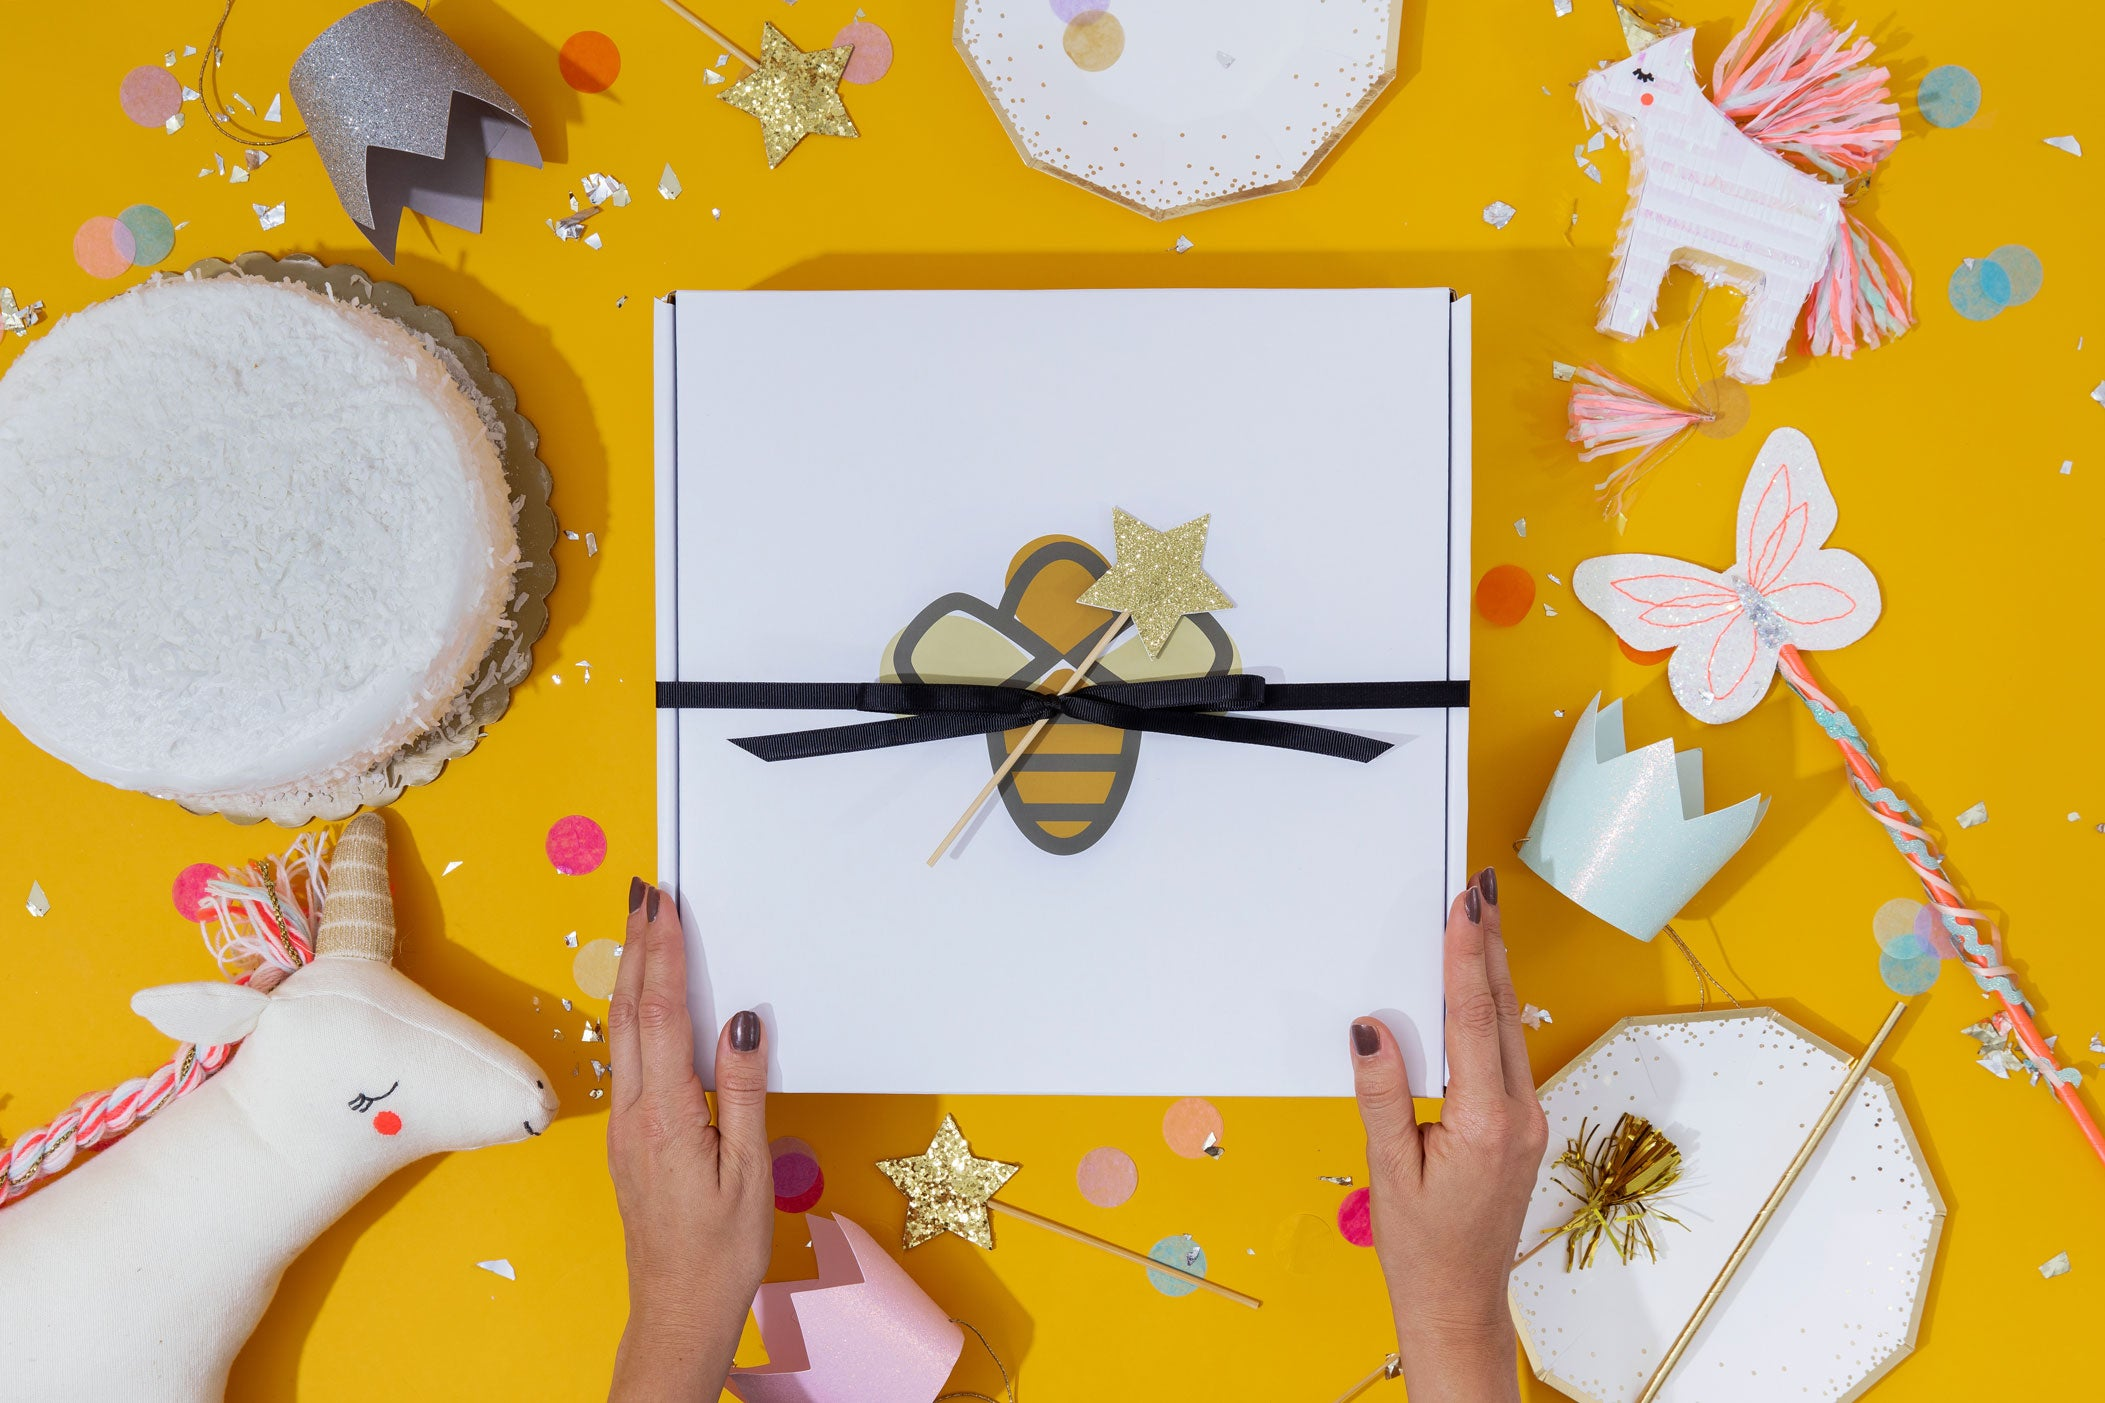 top down view of HoneBug box on yellow table surrounded by fun accessories